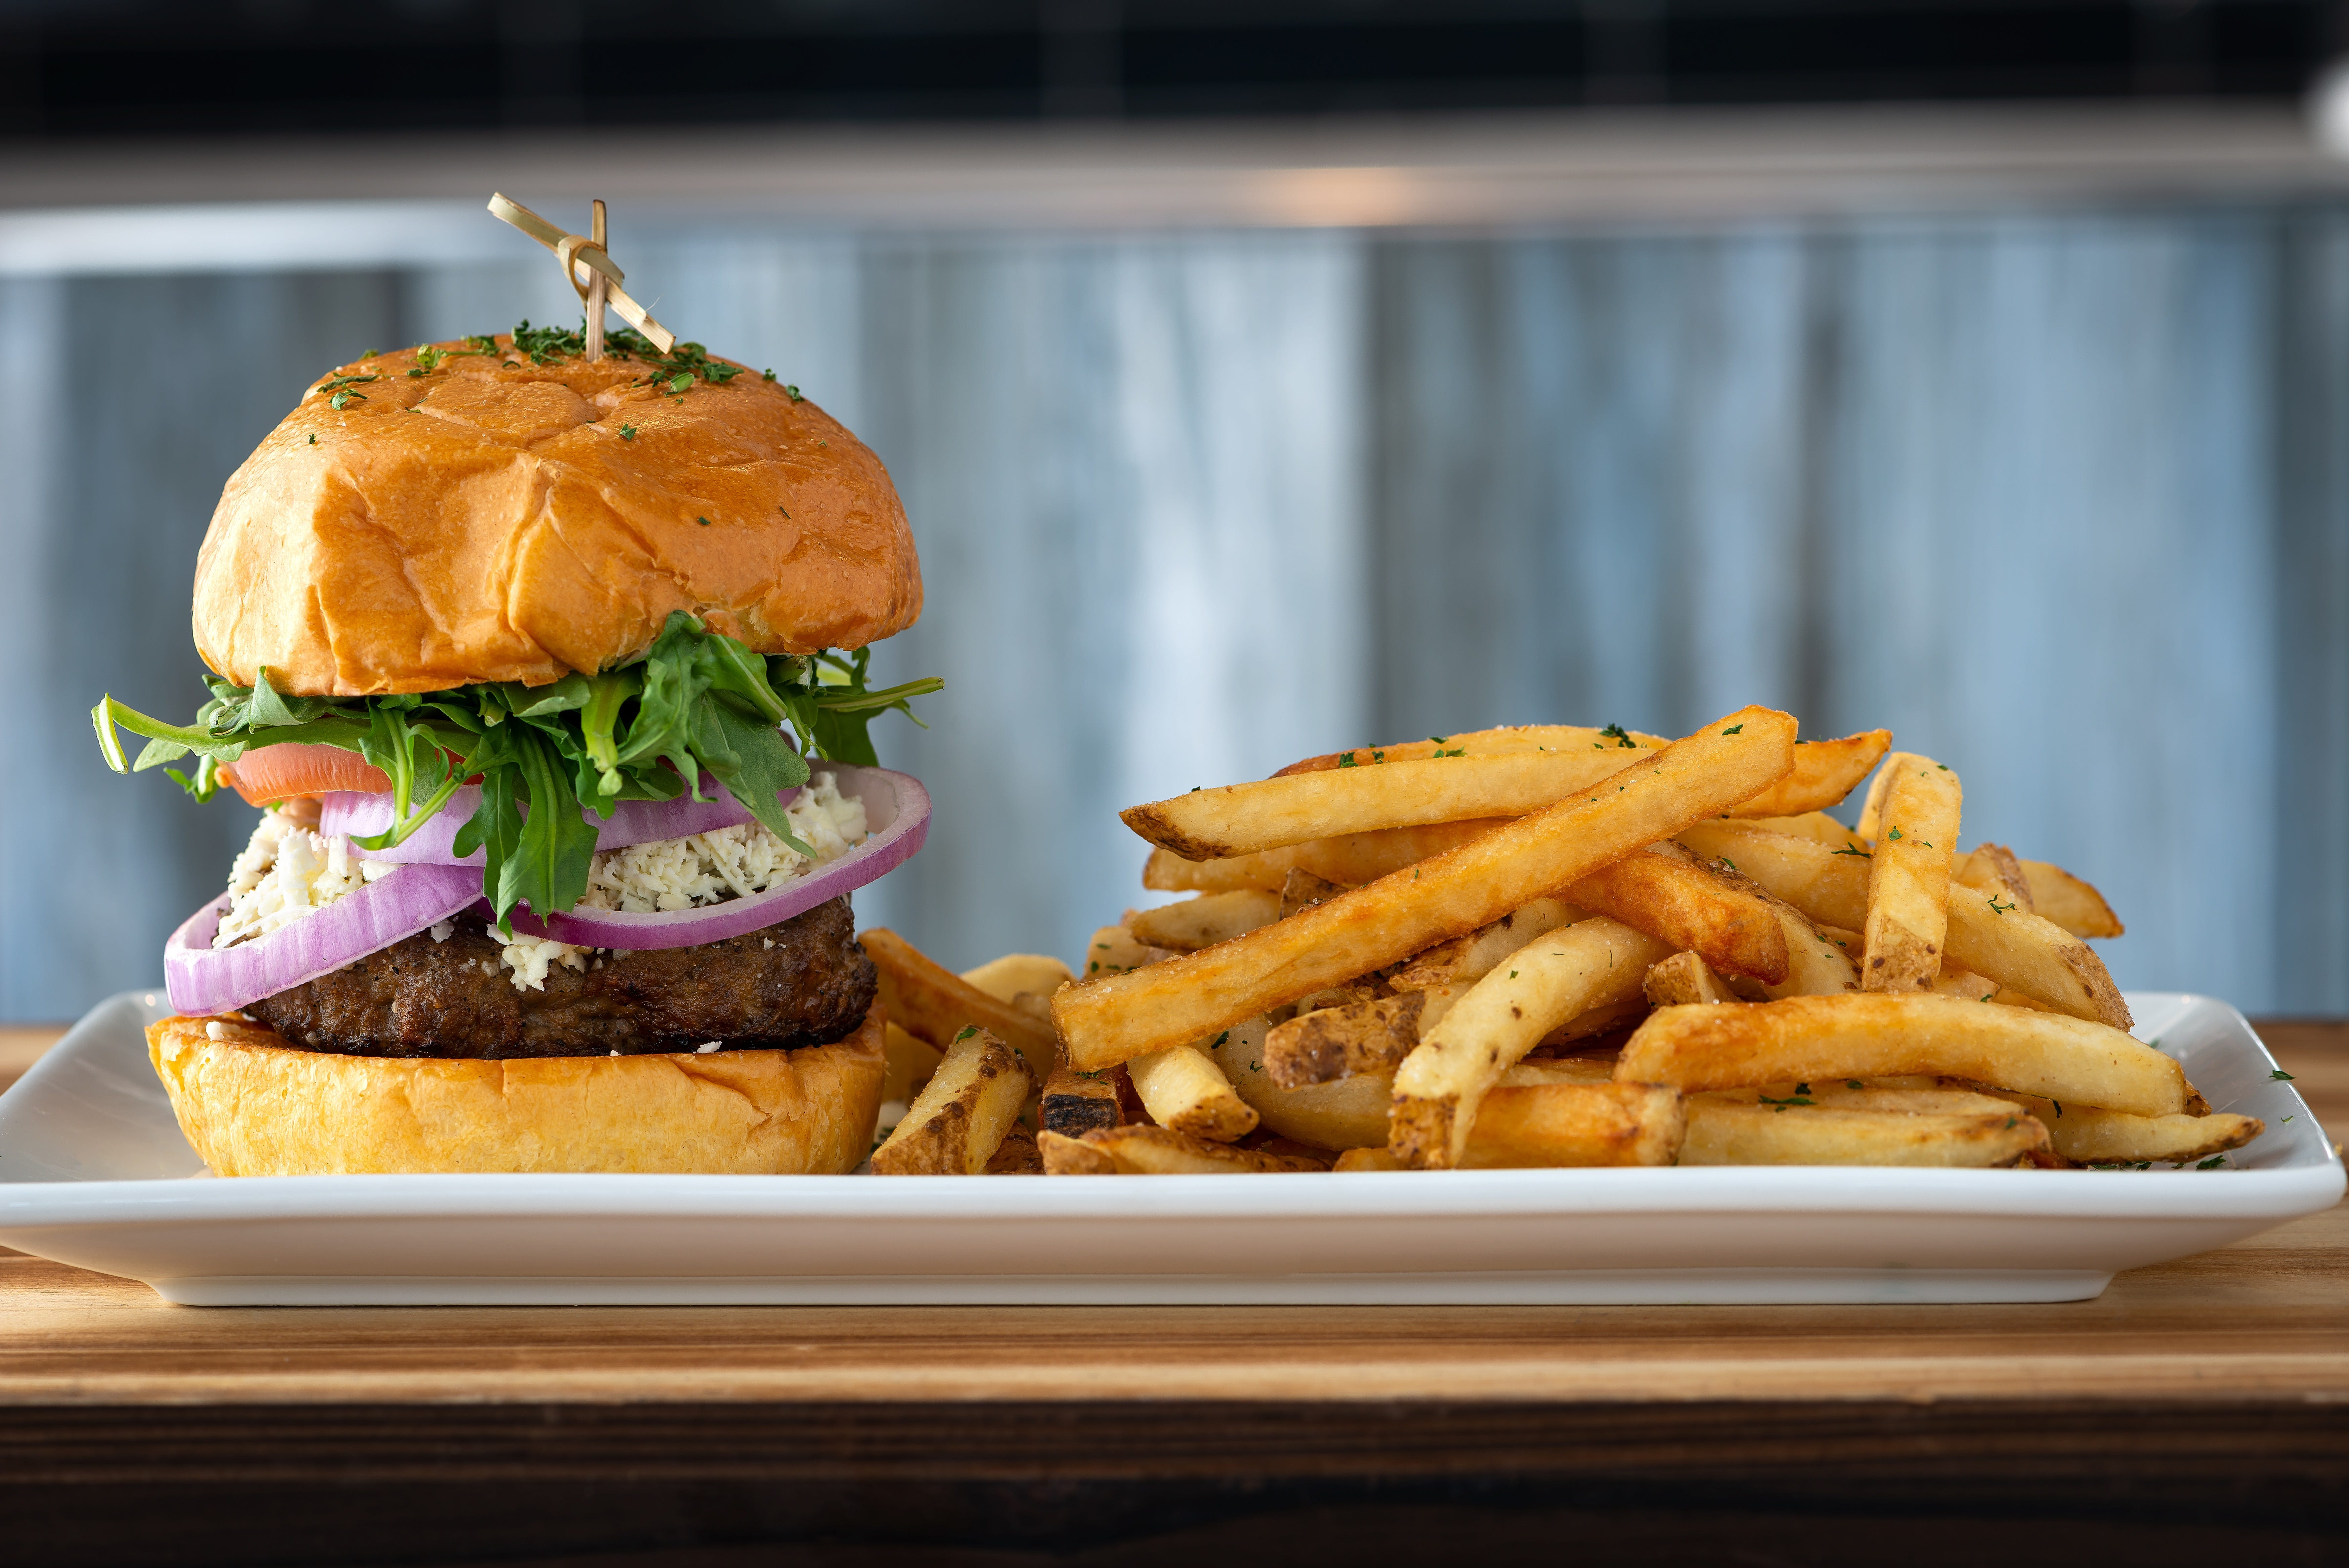 Lamb burger and fries from Kovo, a Mediterranean-inspired restaurant in northeast Phoenix.